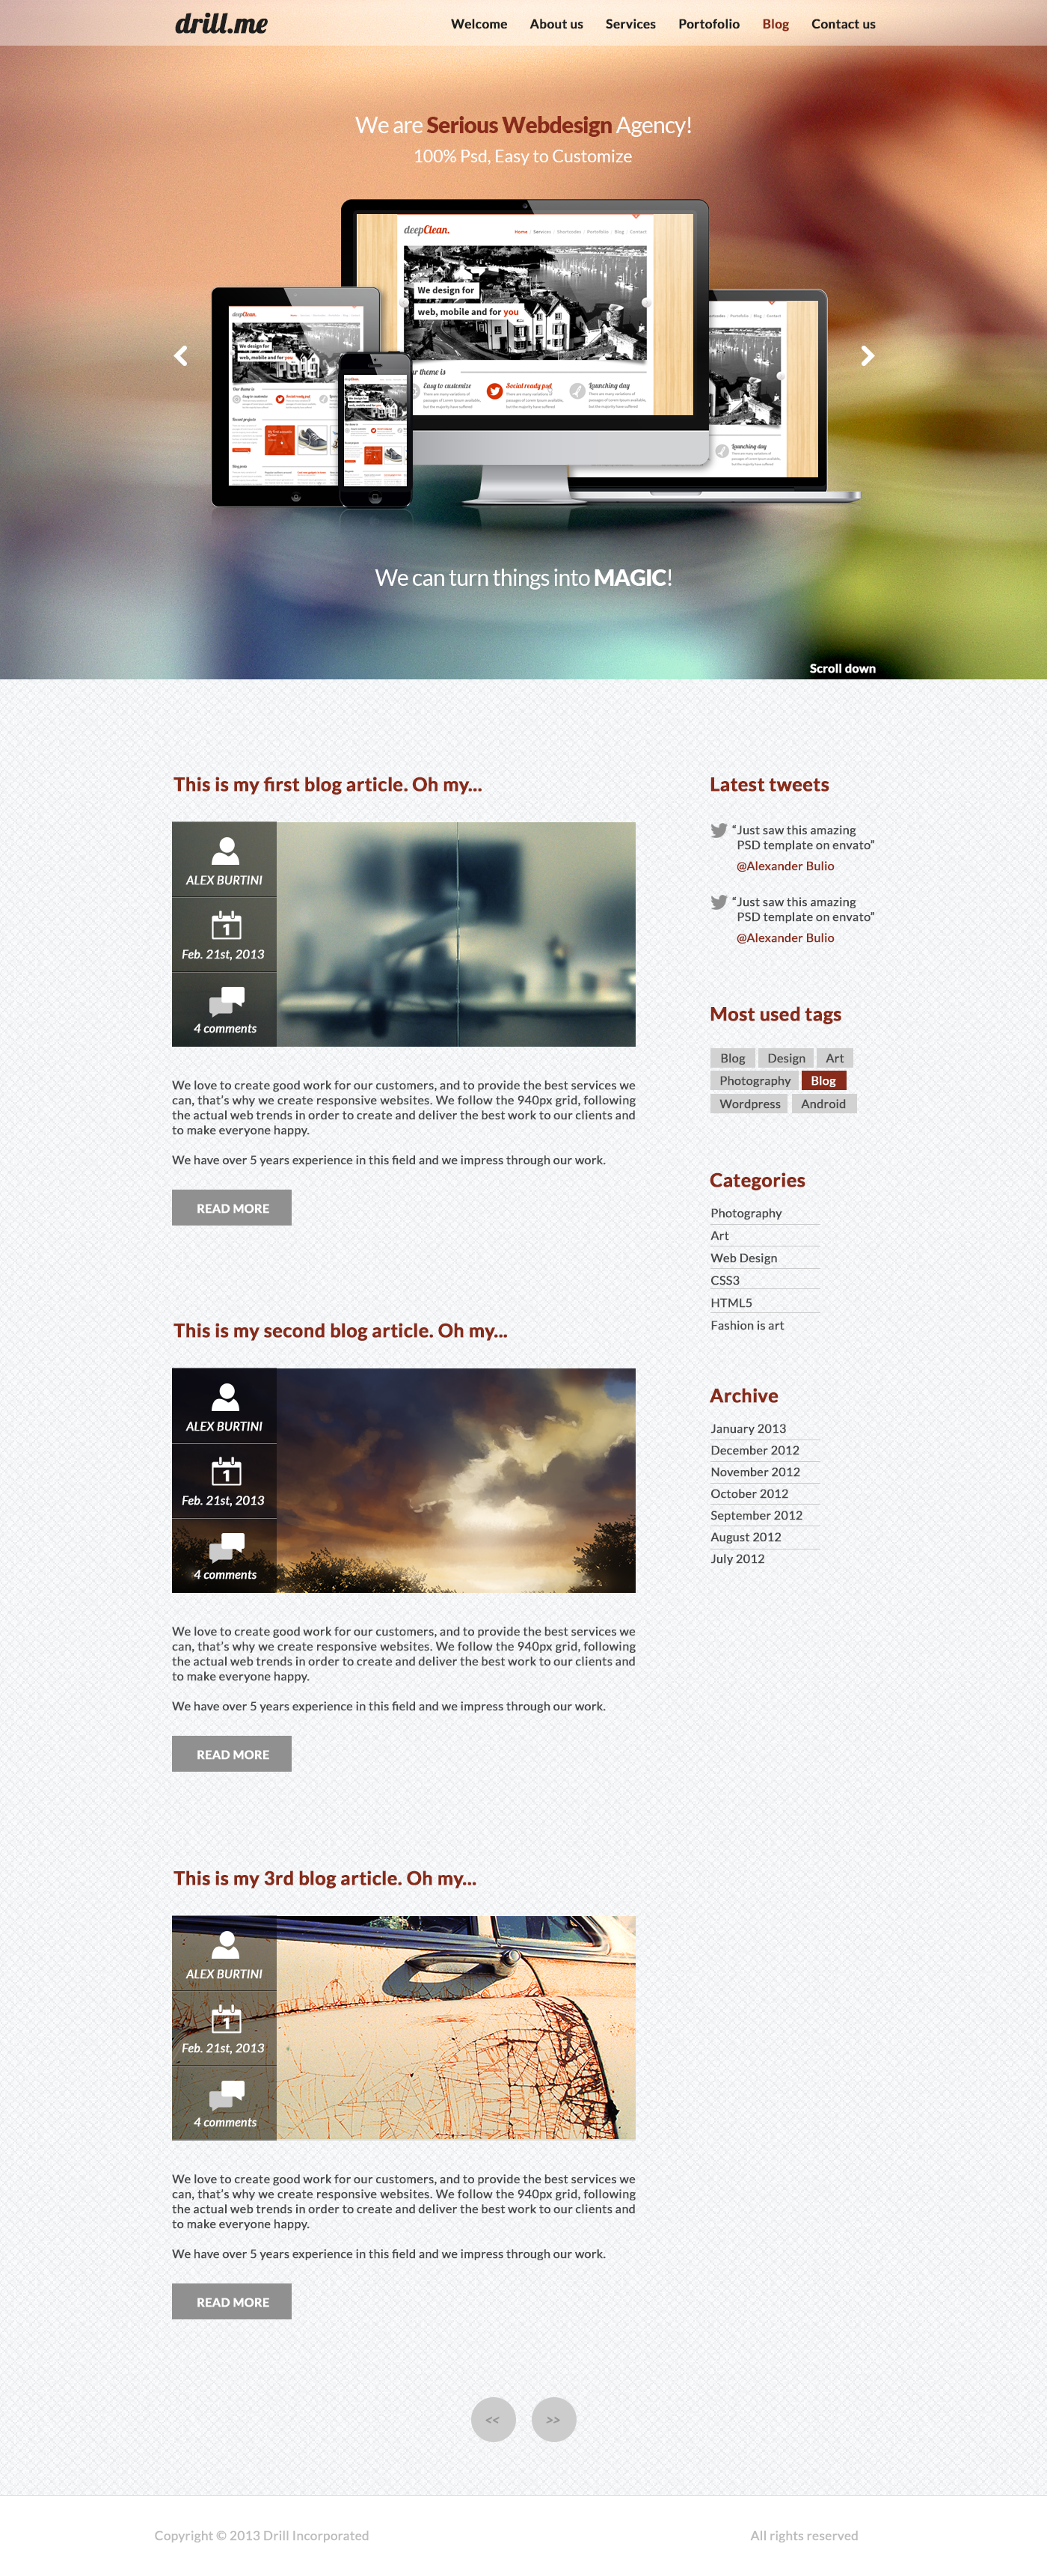 drill.me - Single Page Responsive Ready PSD